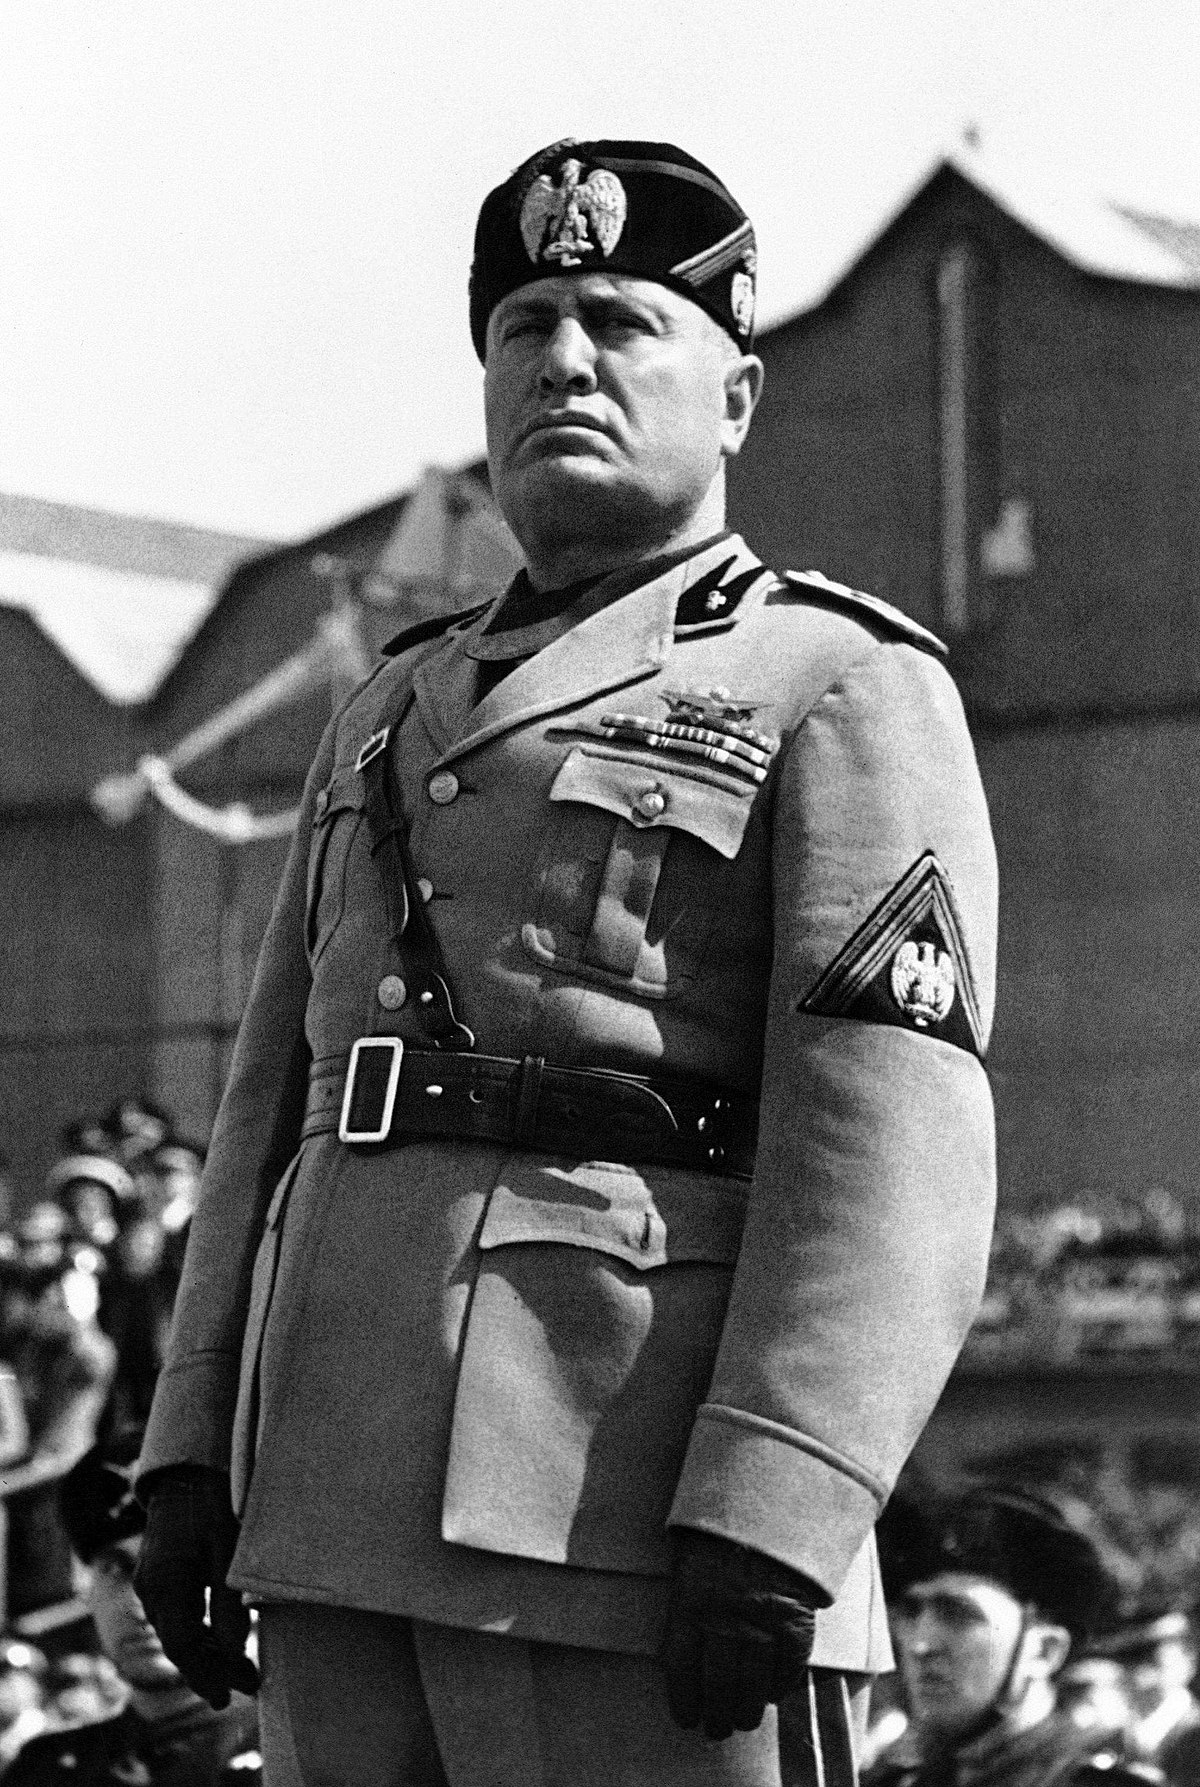 the history of benito amilcare andrea mussolini the italian leader from nineteen twenty two to ninet Benito amilcare andrea mussolini (29 july 1883 — 28 april 1945) was an italian fascist politician who was leader of italy from 1922, pretty much up to his death unlike his german contemporary adolf hitler, he was never in official command of his nation due to king victor emmanuel iii nominally.